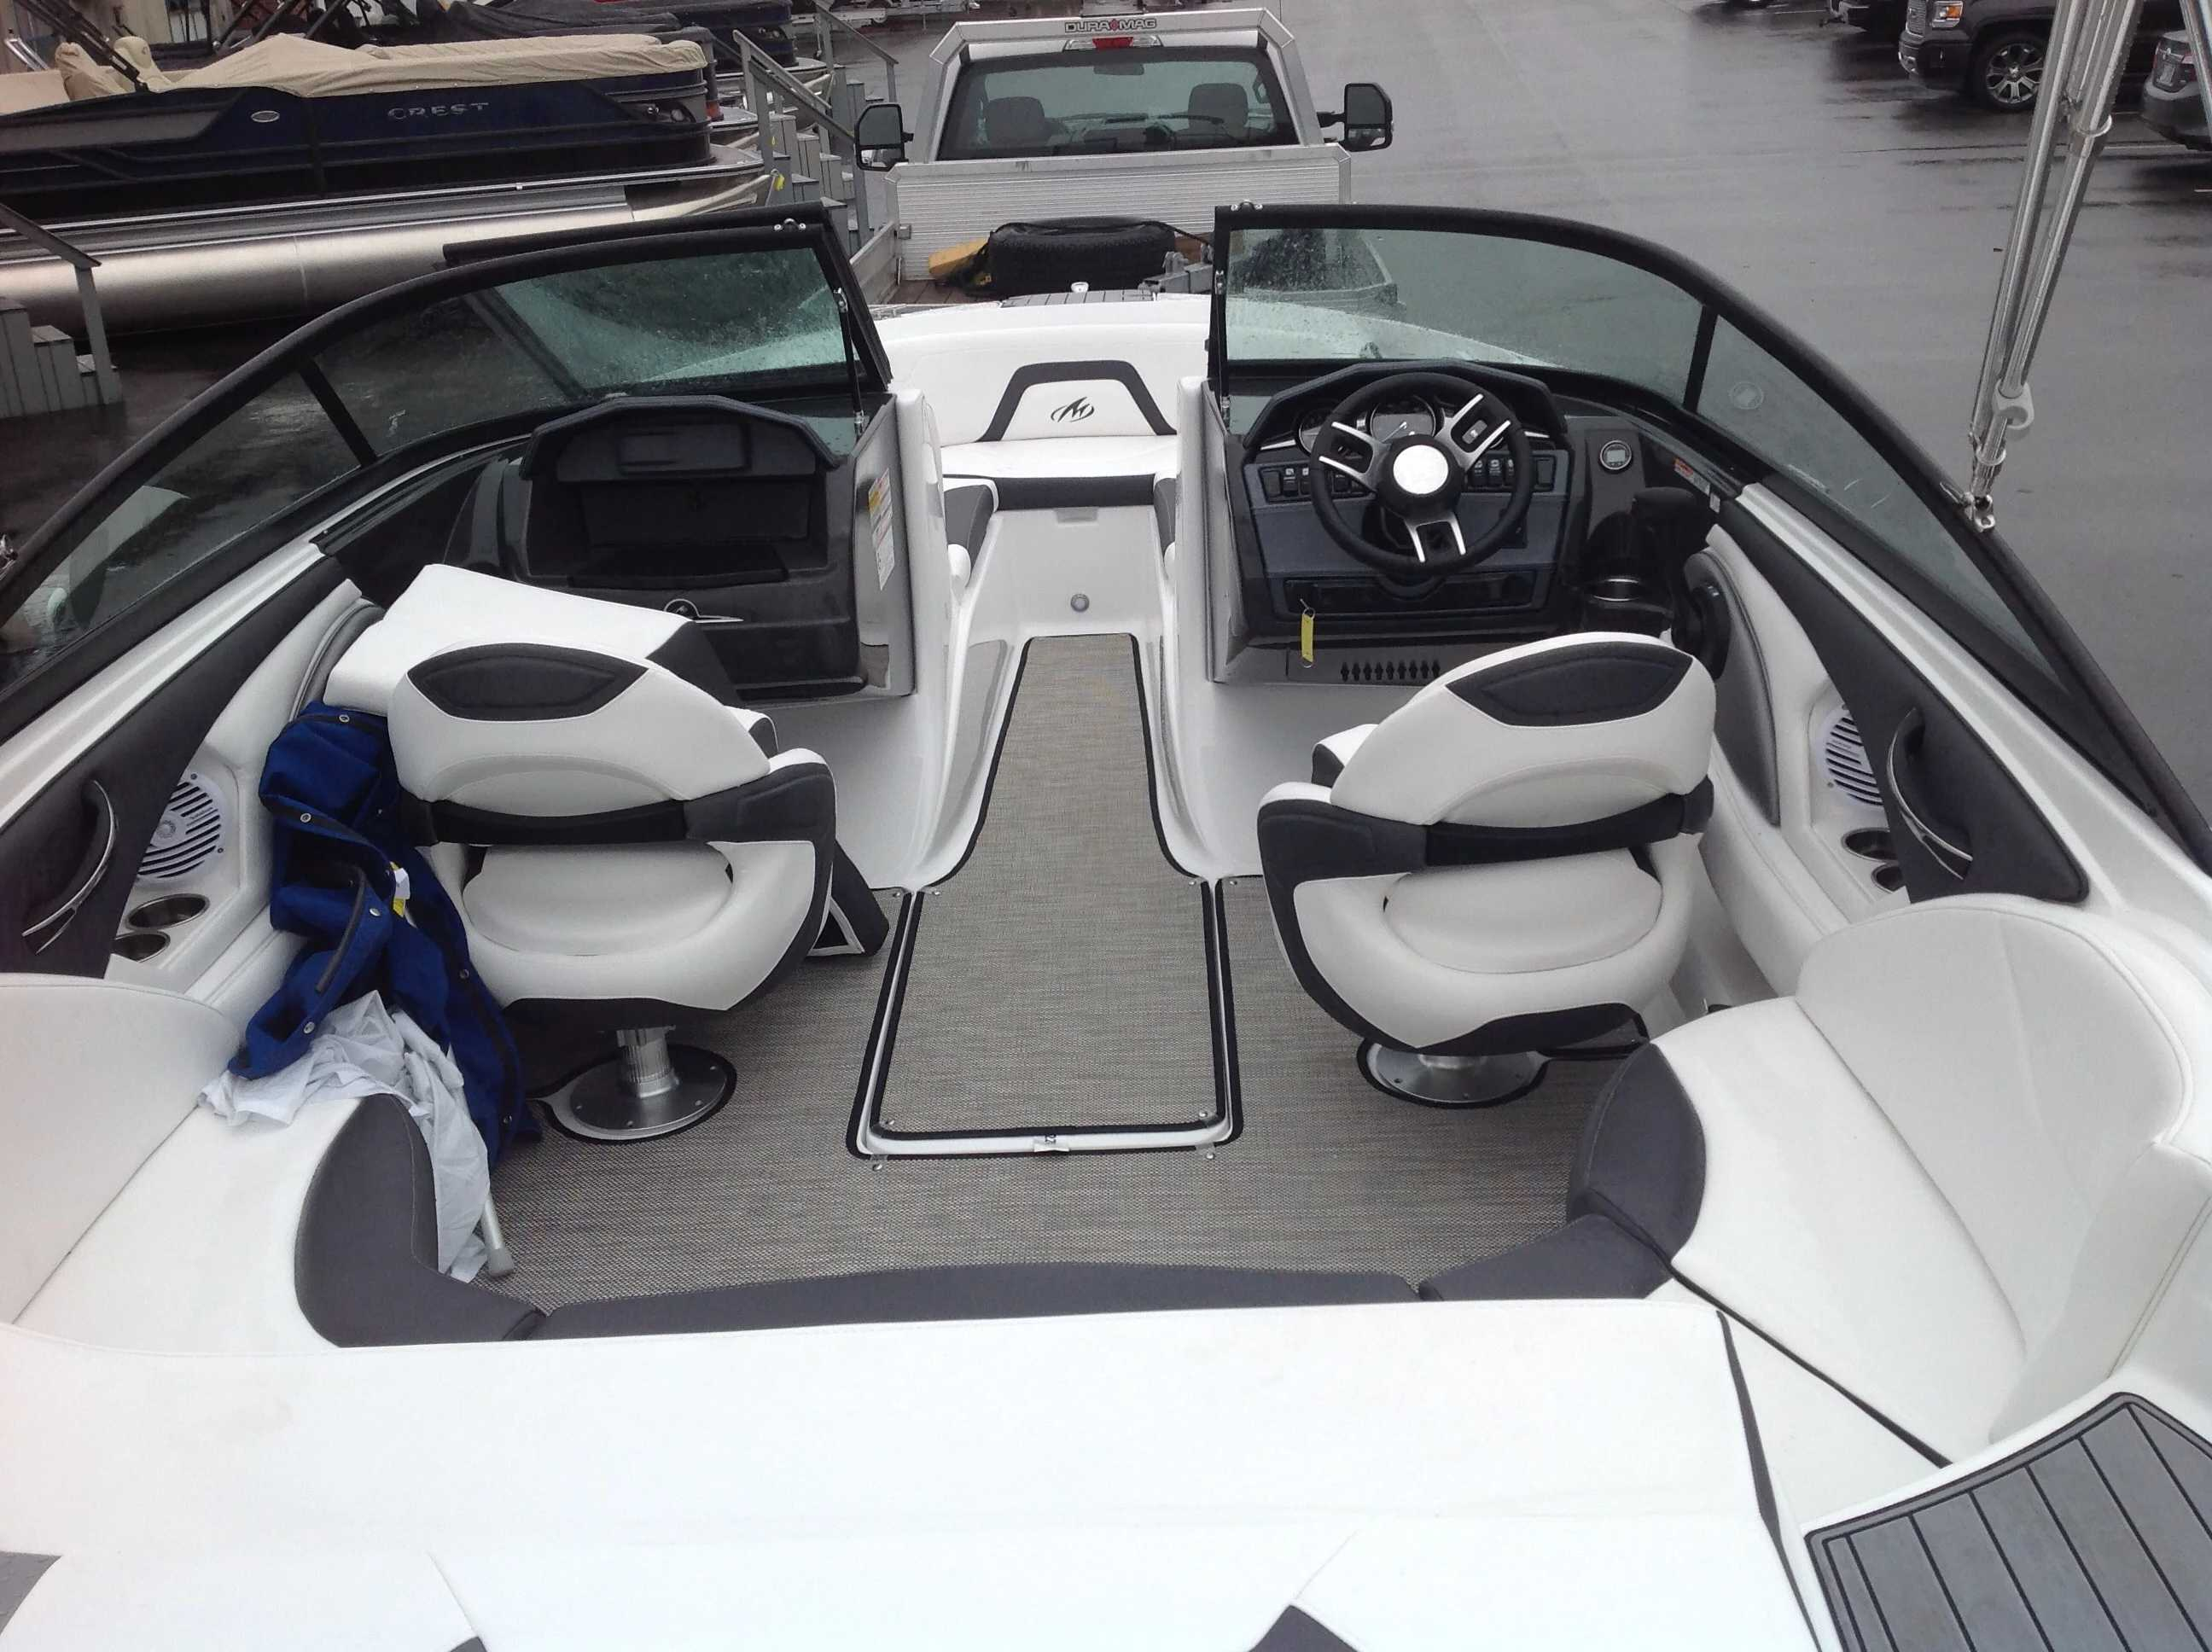 2022 Monterey boat for sale, model of the boat is 224FS & Image # 8 of 10